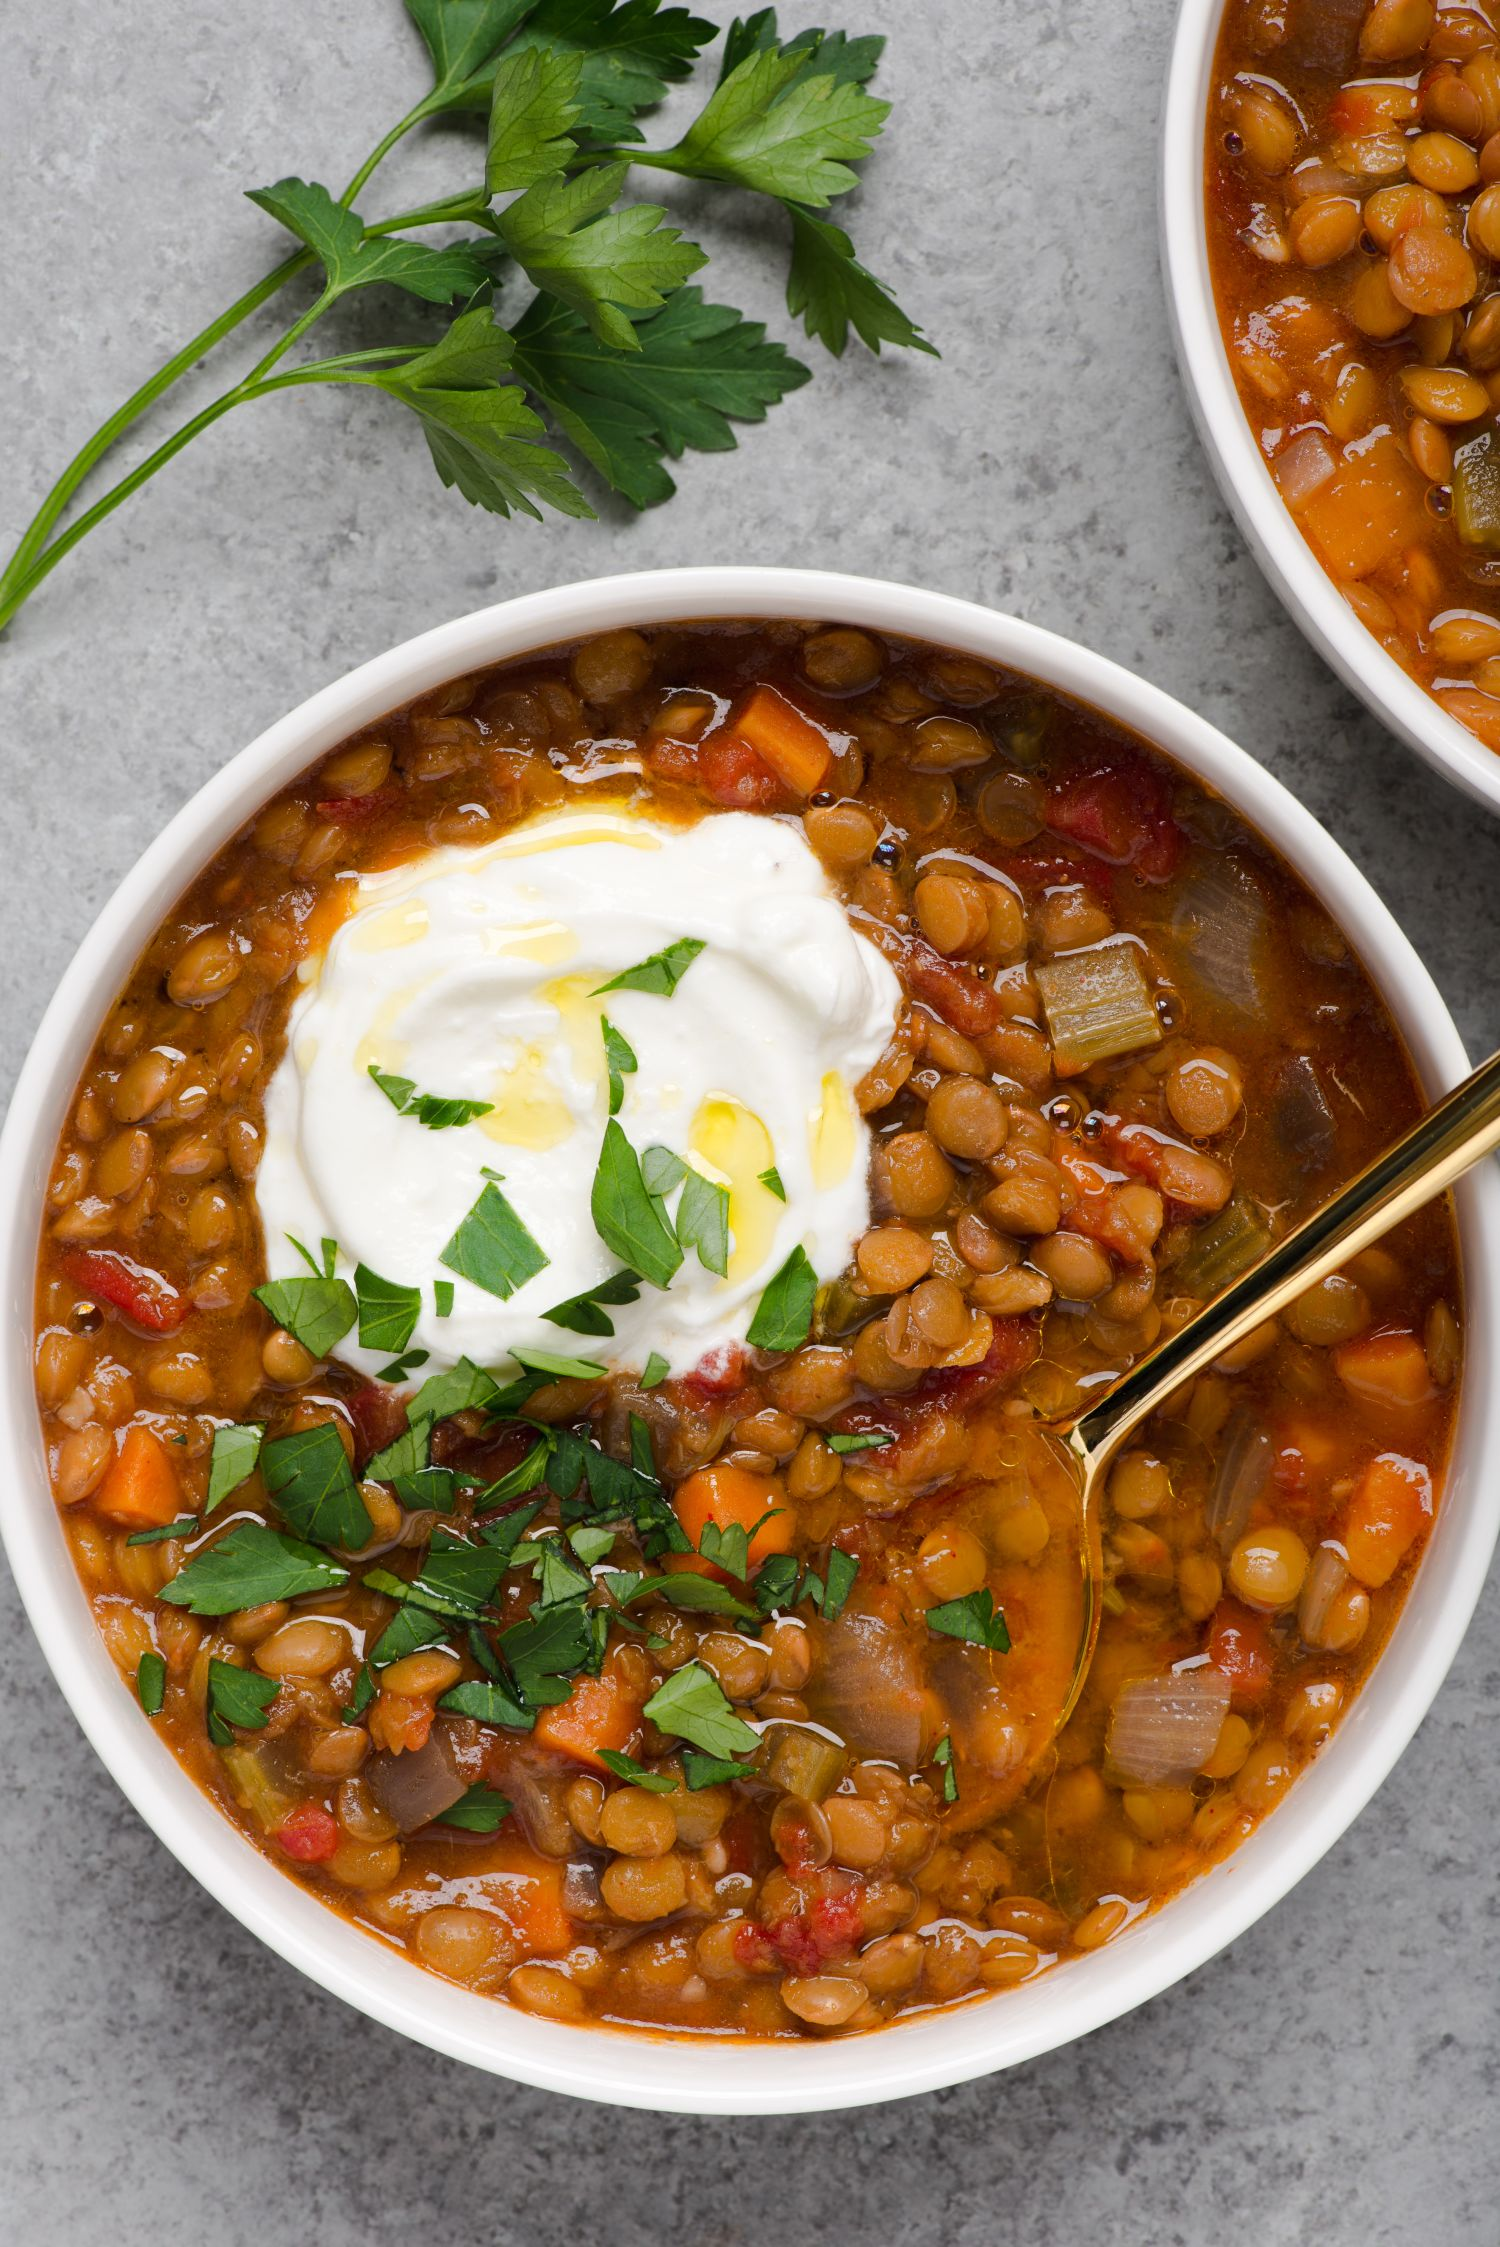 An Easy Slow Cooker Lentil Soup That Simmers for 8 Hours